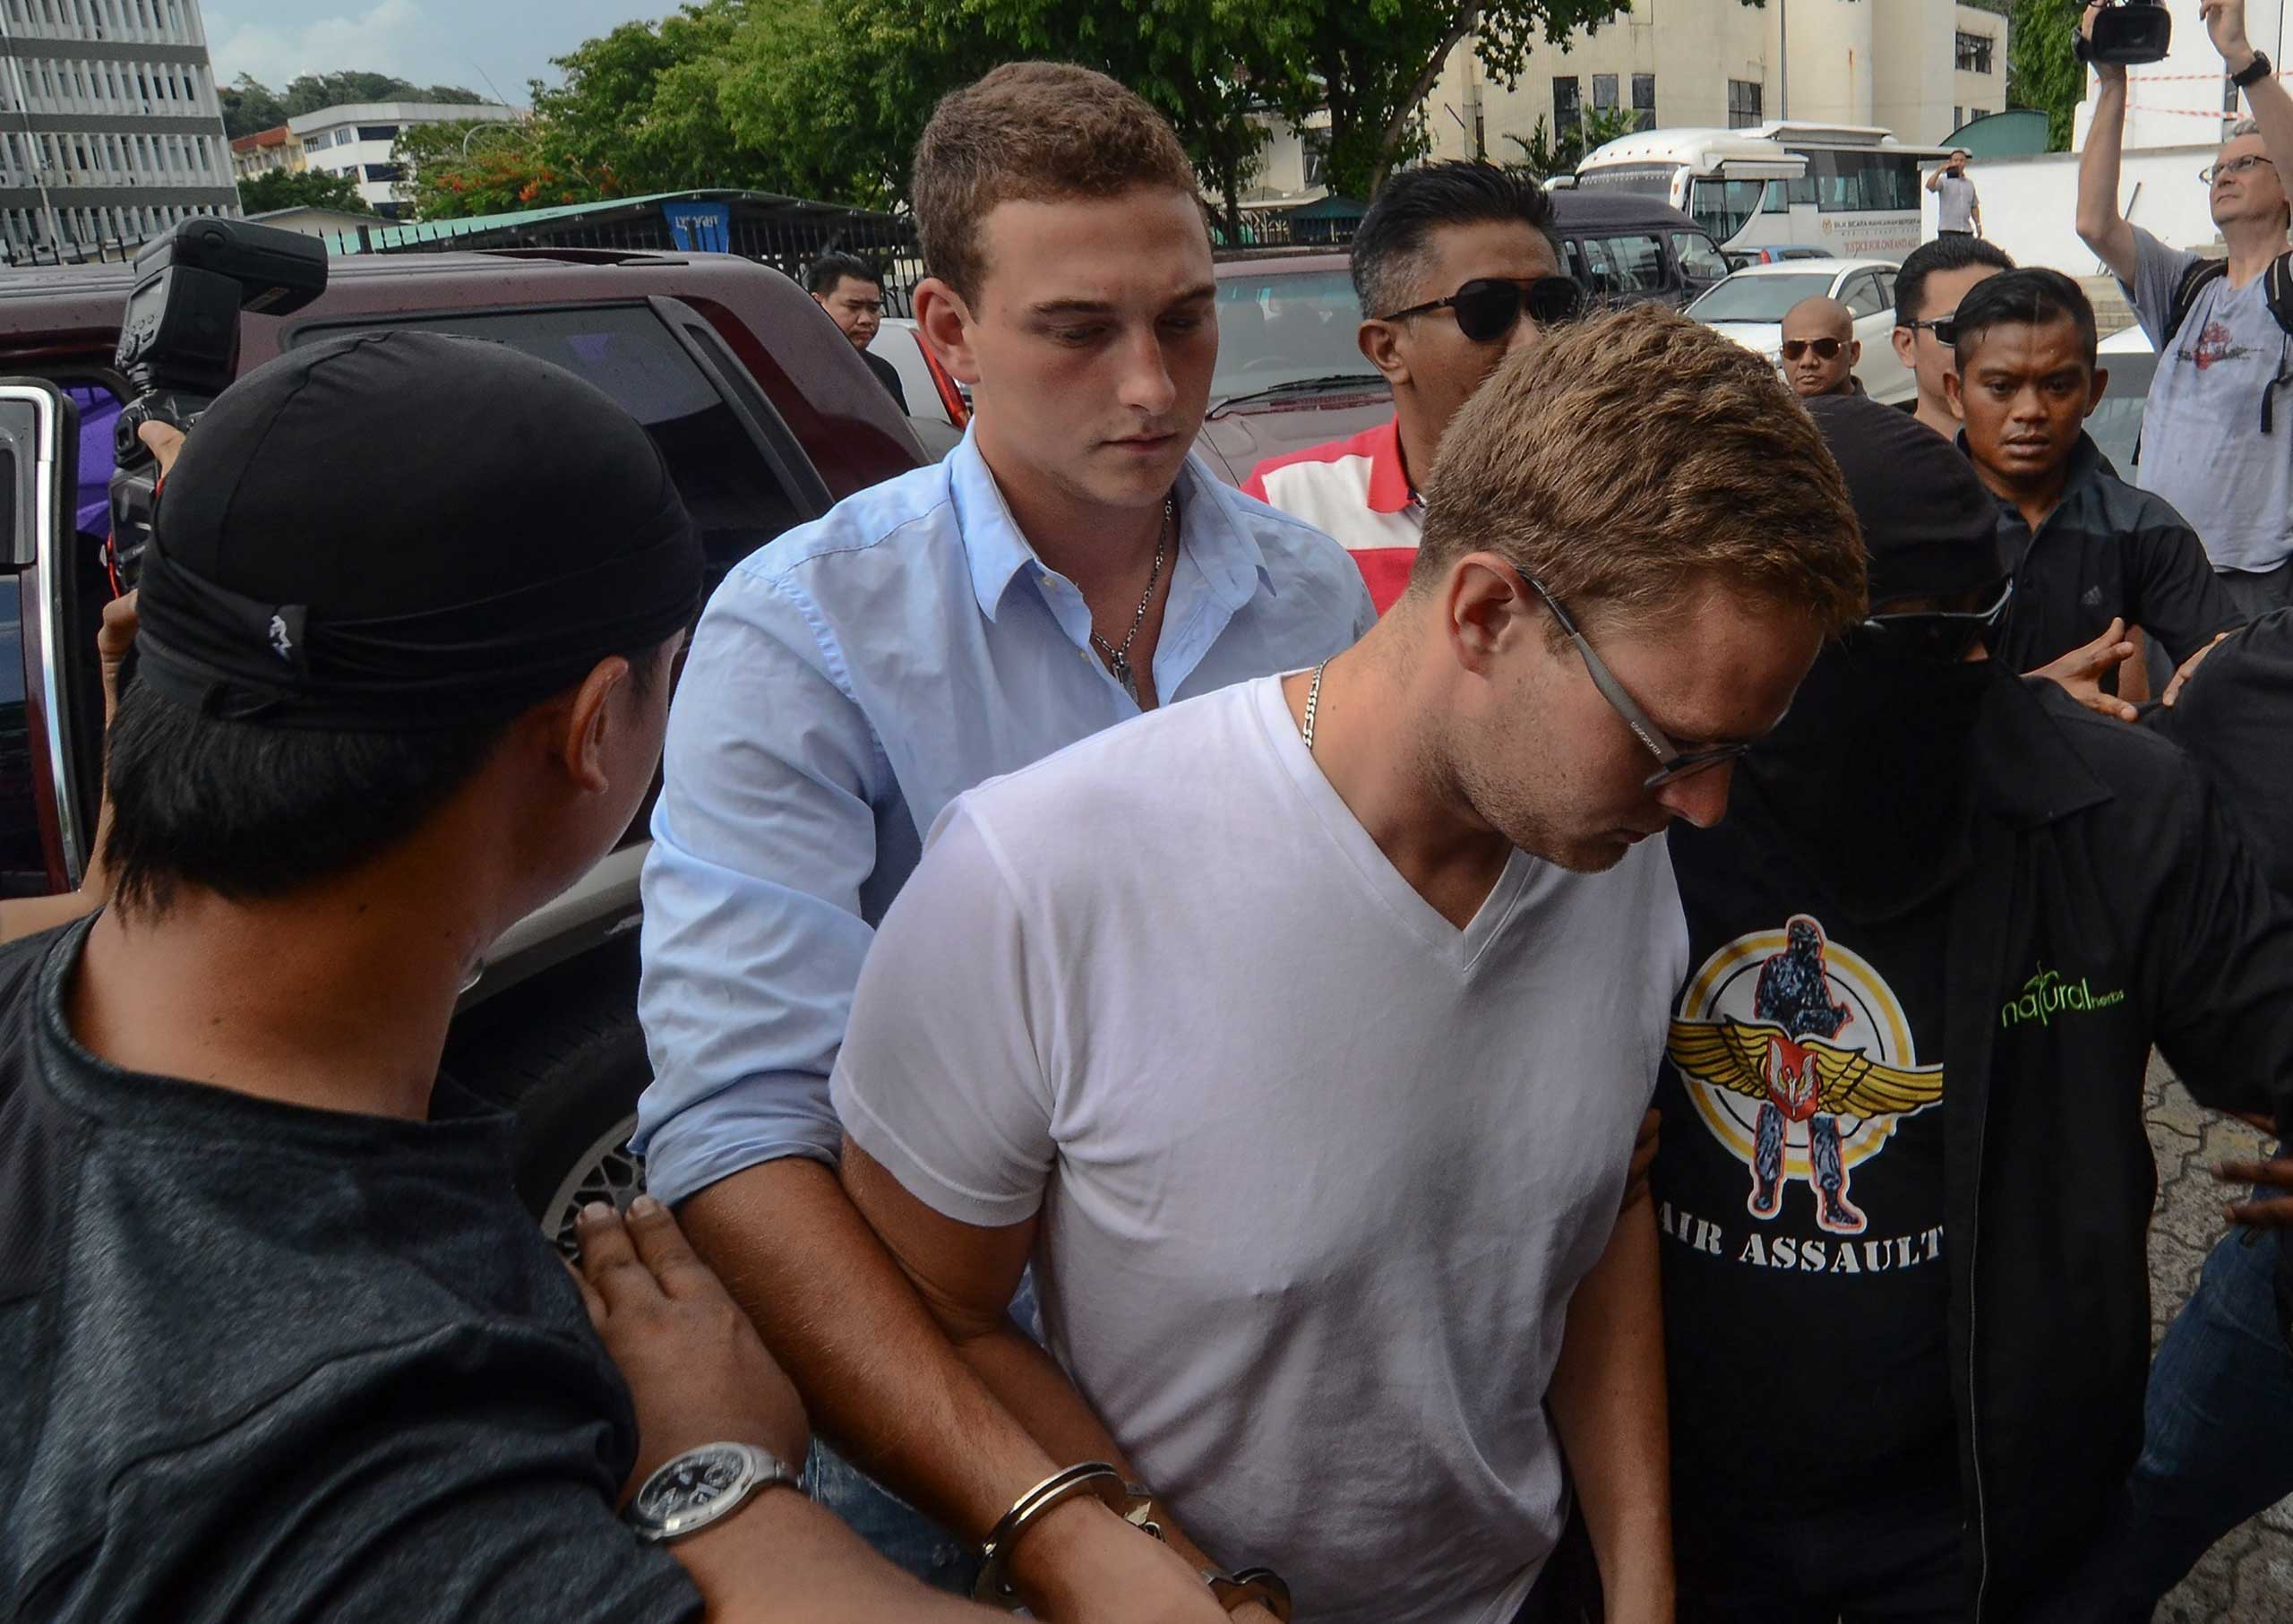 Dutch national Dylan Snel (centre R), 23, and Canadian national Danielle Petersen (centre L), 22, arrive at a court in Kota Kinabalu, Malaysia on June 12, 2015.